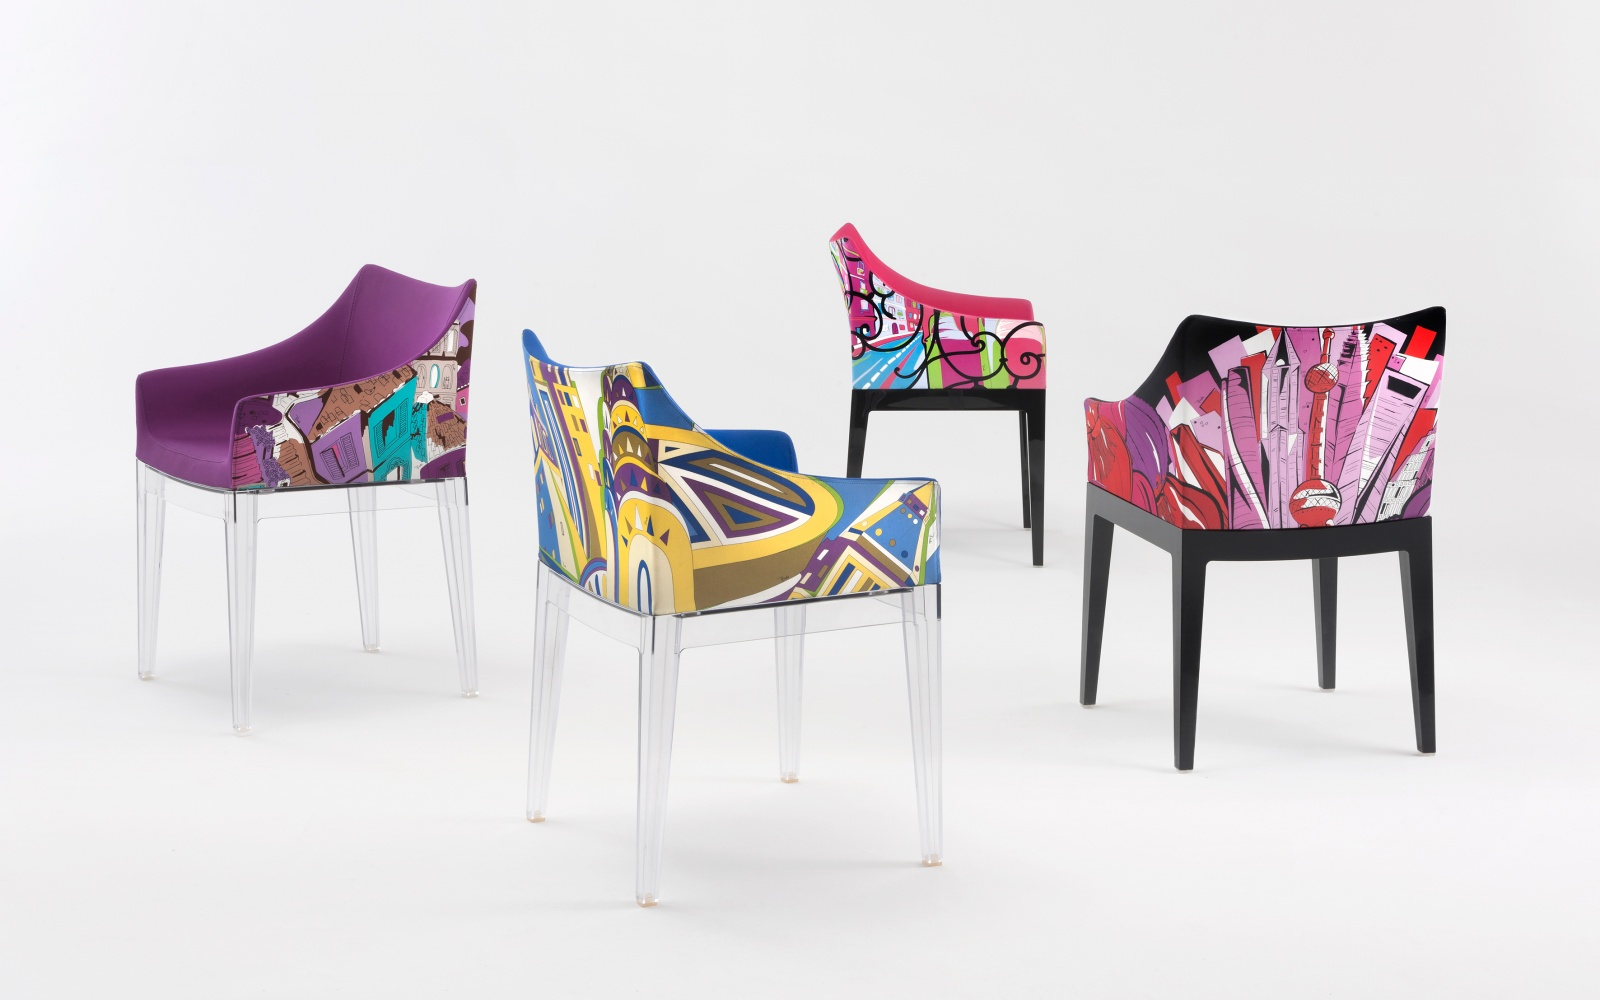 kartell unveils chair designed by philippe starck and emilio pucci travel leisure. Black Bedroom Furniture Sets. Home Design Ideas